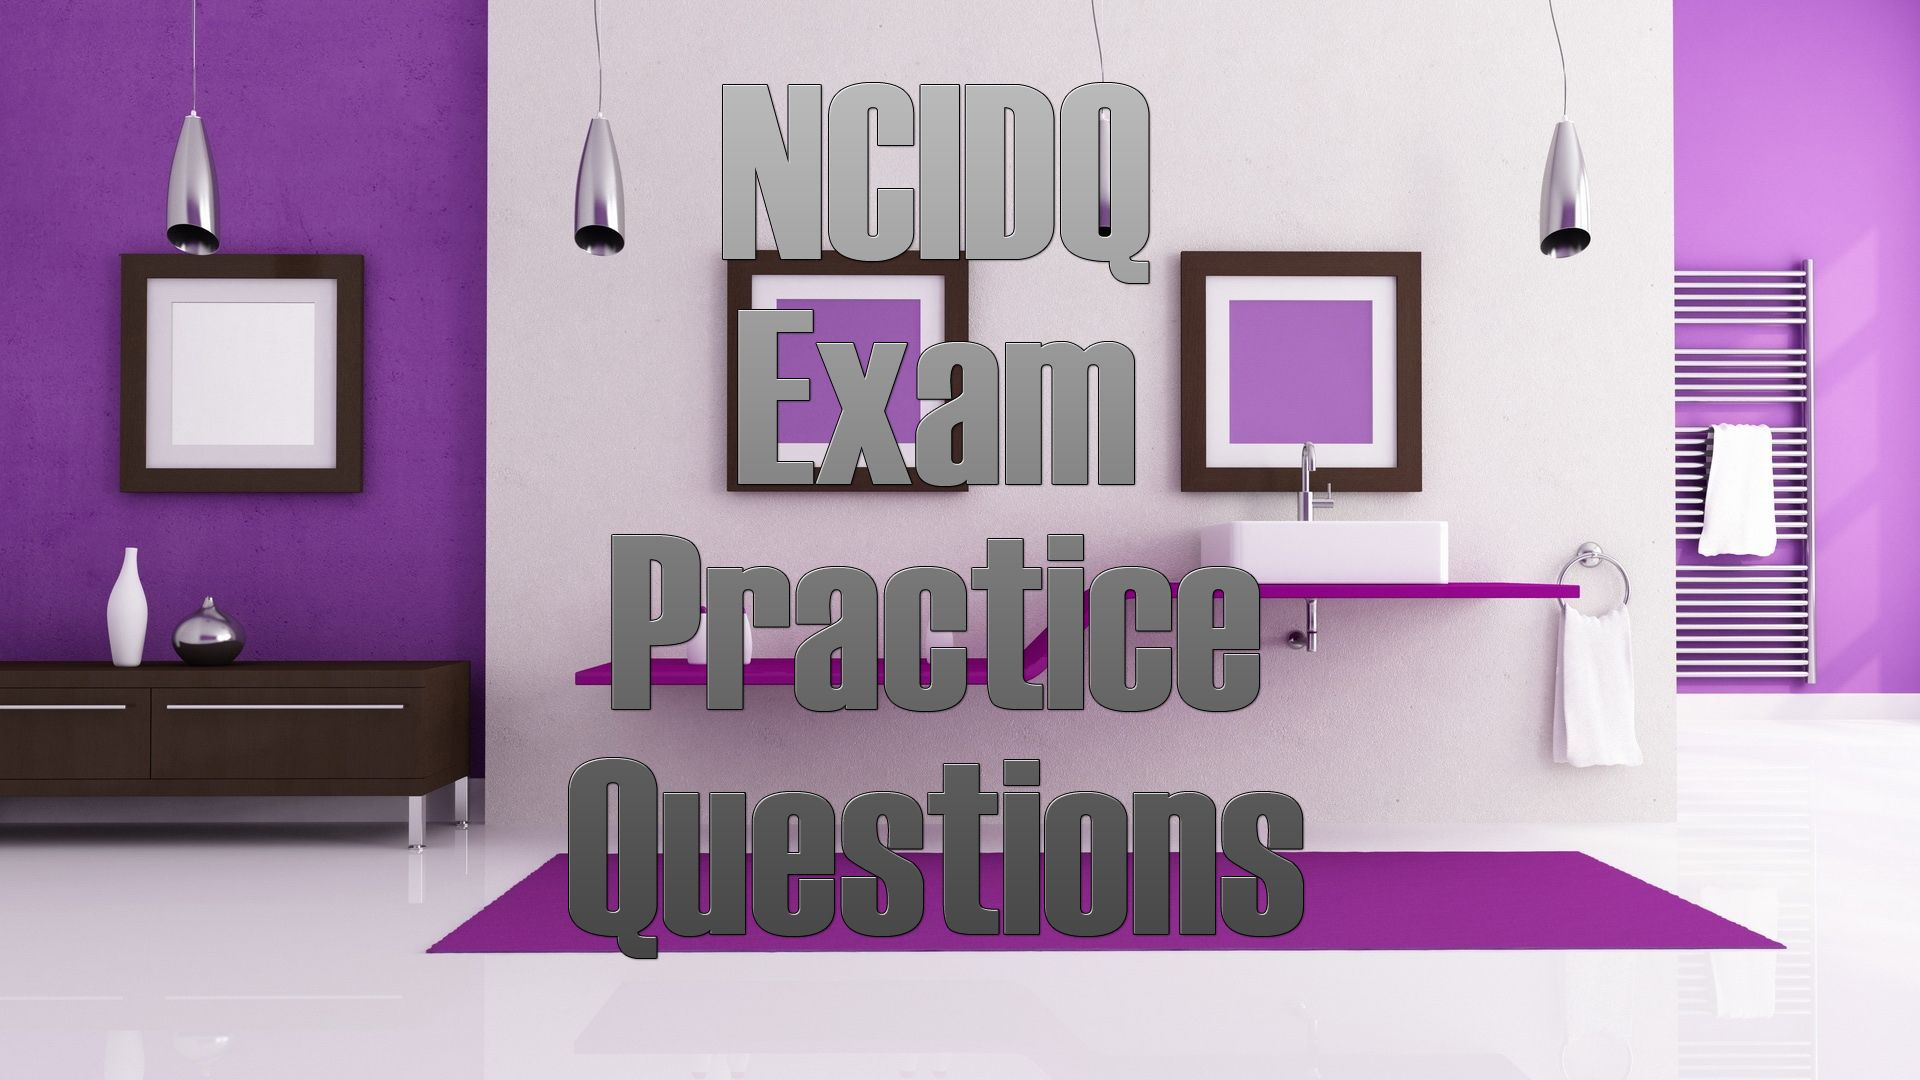 If Youu0027re Wanting To Become An Interior Designer, Youu0027ll Need To Become  Qualified With The NCIDQ Exam. Try Out These Free NCIDQ Practice Questions  To Get A ...